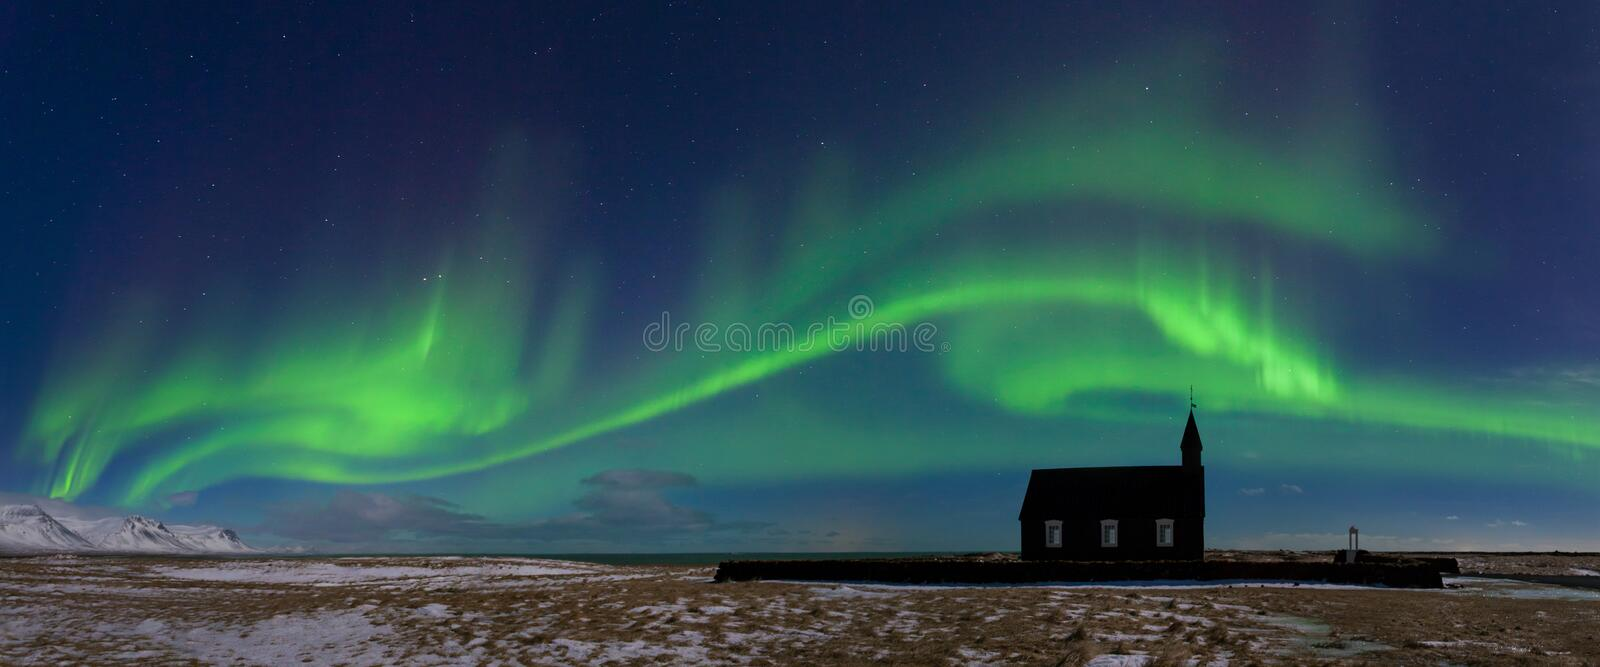 Aurora borealis above the church in Iceland. Green northern lights. Starry sky with polar lights. royalty free stock photography